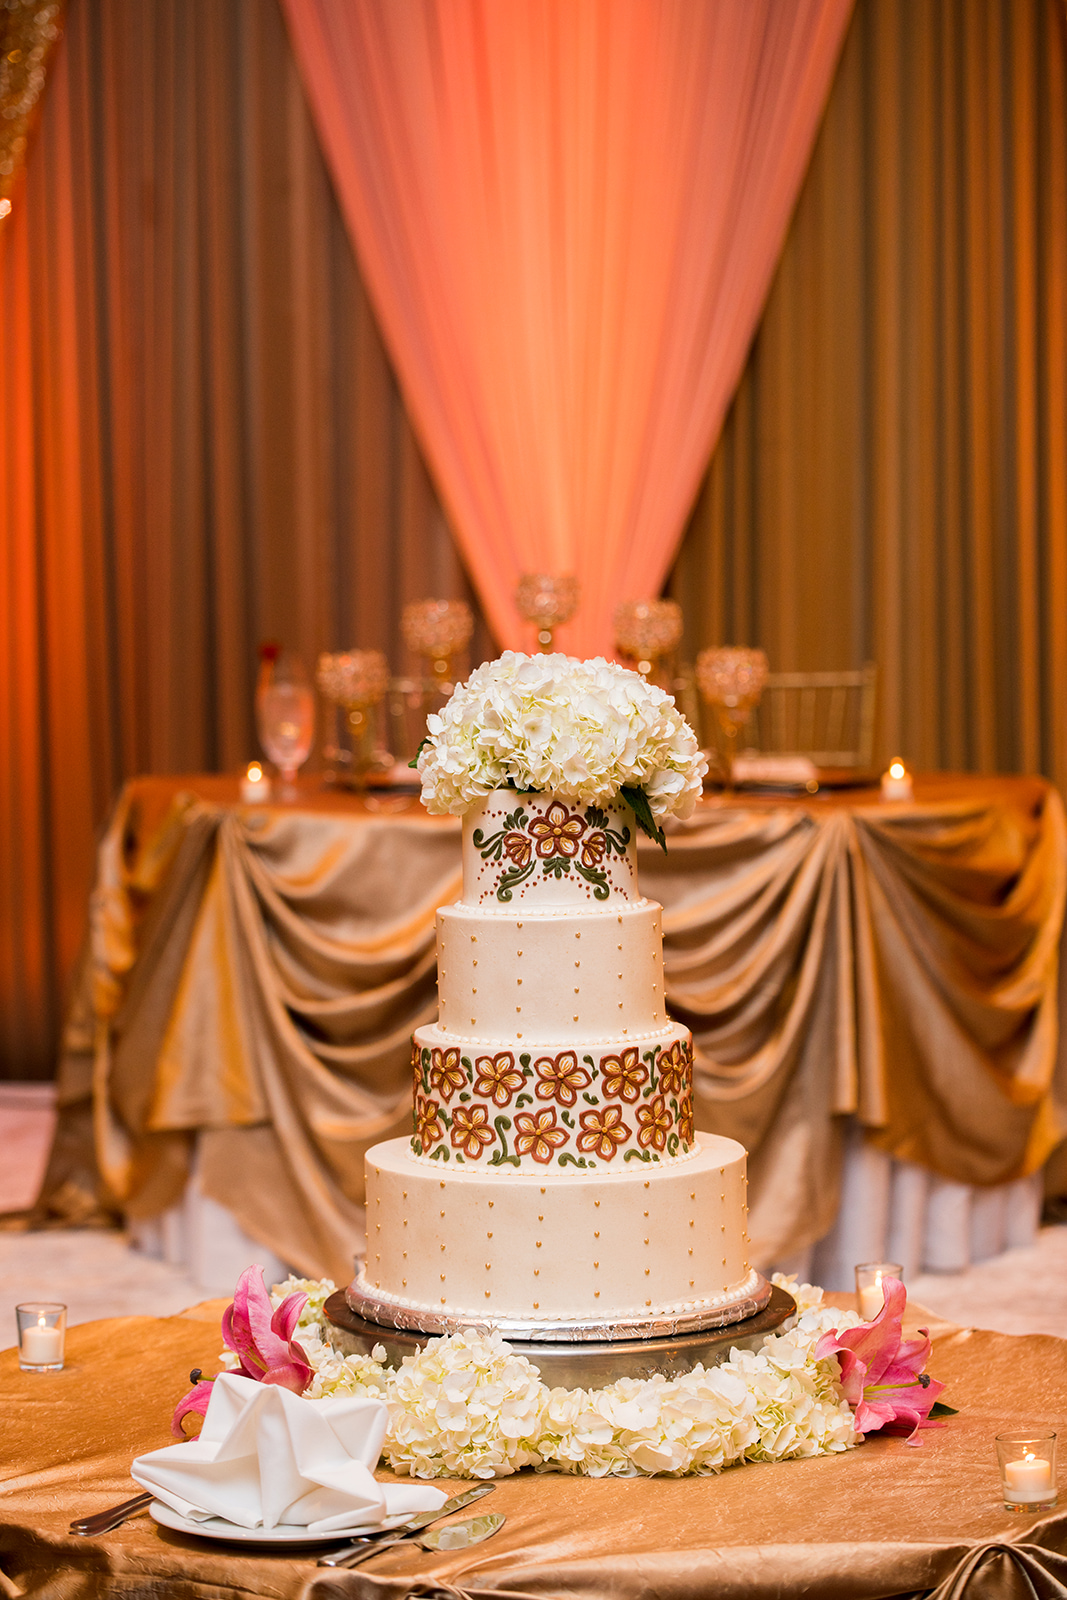 Le Cape Weddings - South Asian Wedding - Ishani and Sidhart - Details of Reception -2.jpg